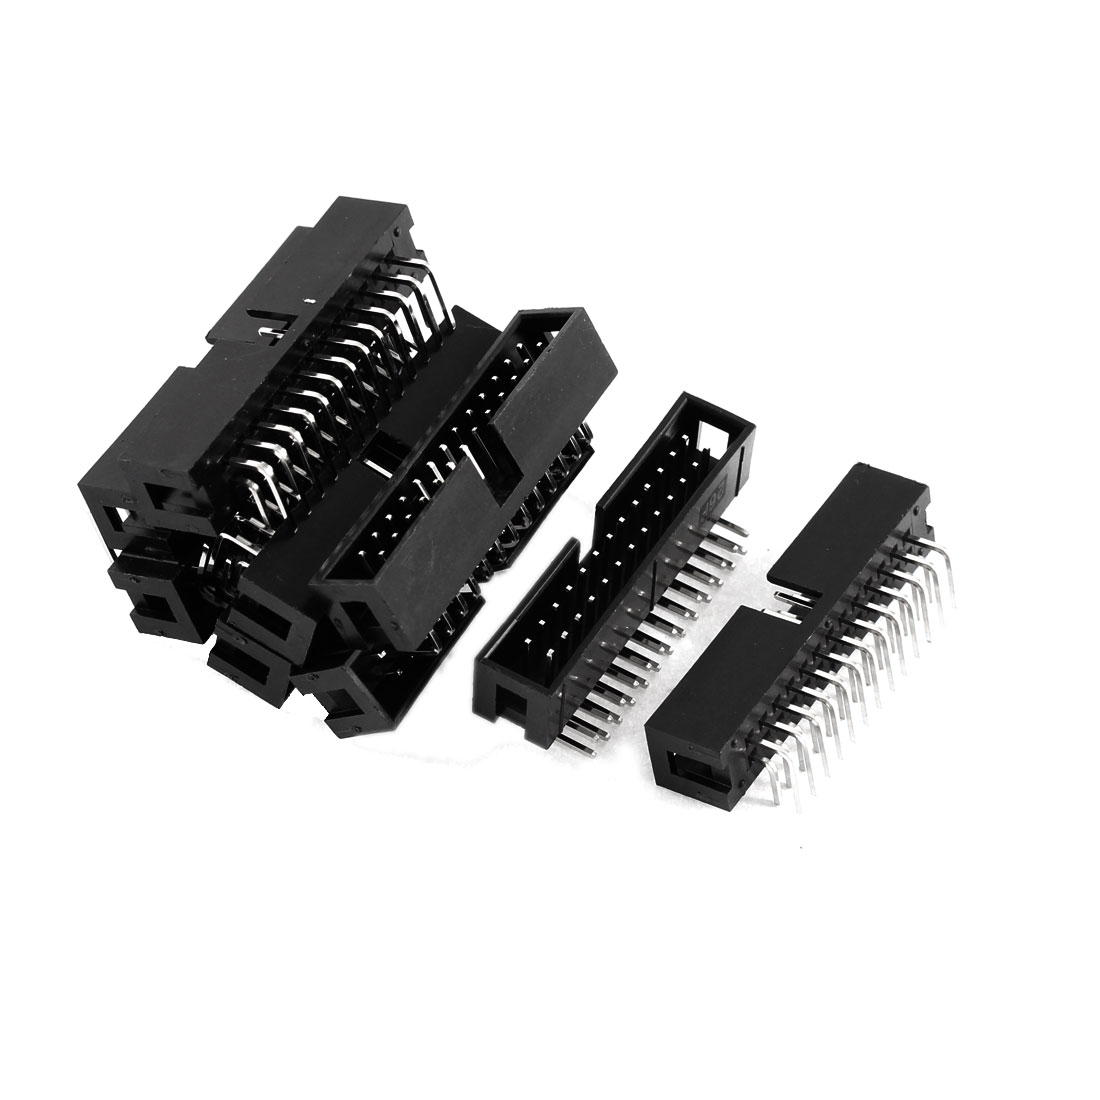 PCB Board Double Rows 26 Pins Header Socket Connector Black 9 Pcs